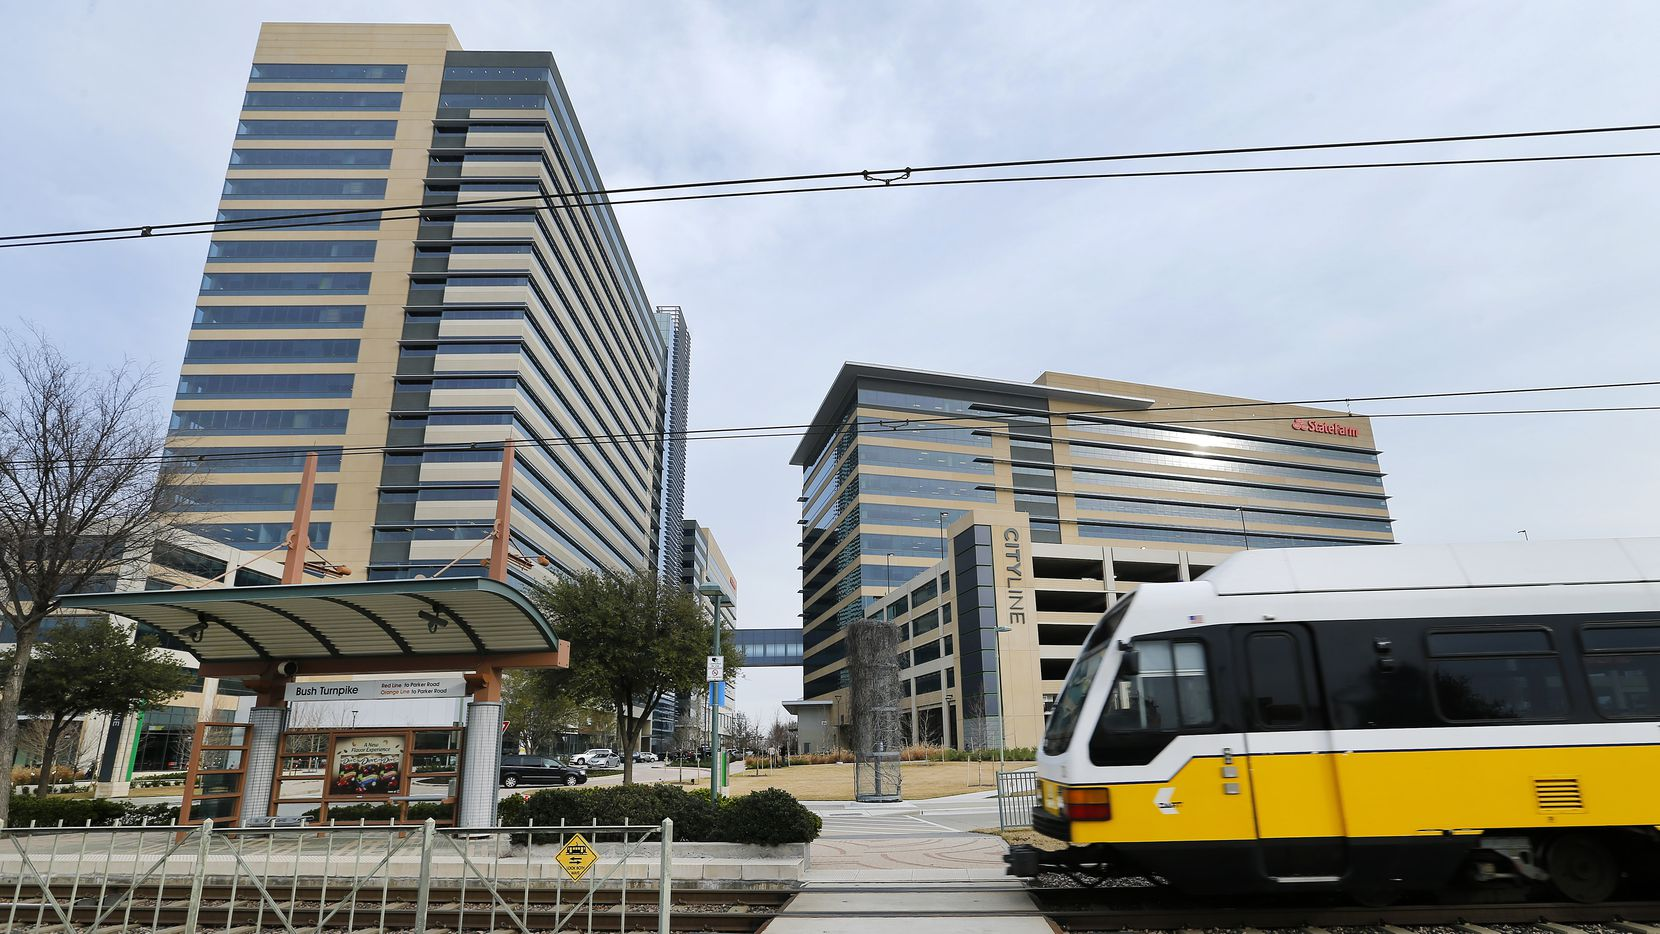 A DART train pulls into the Bush Turnpike station at the State Farm-anchored CityLine development in Richardson. (Tom Fox/The Dallas Morning News)